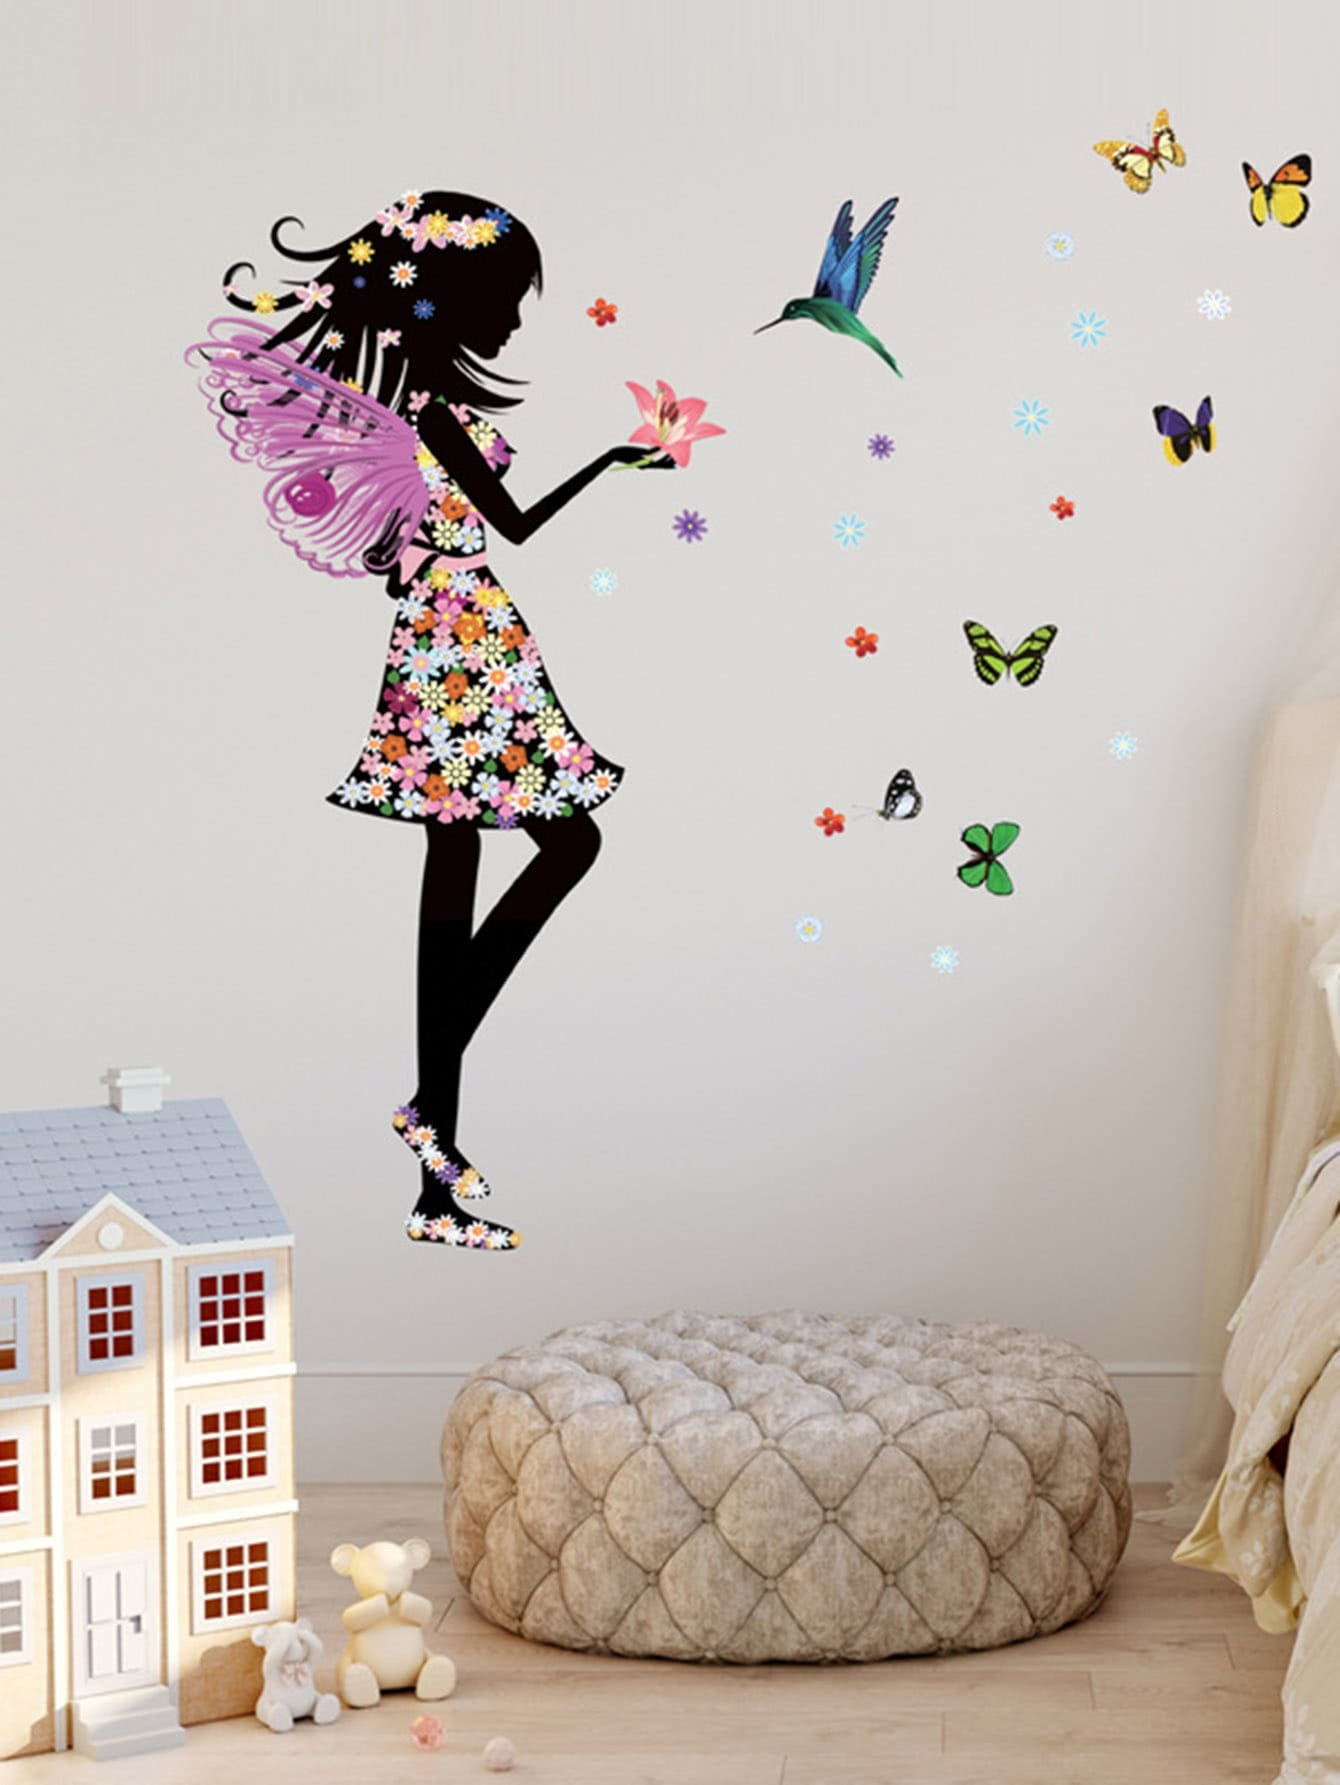 Fairy & Butterfly Wall Sticker fluorescence creative fairy stars luminous switch wall sticker